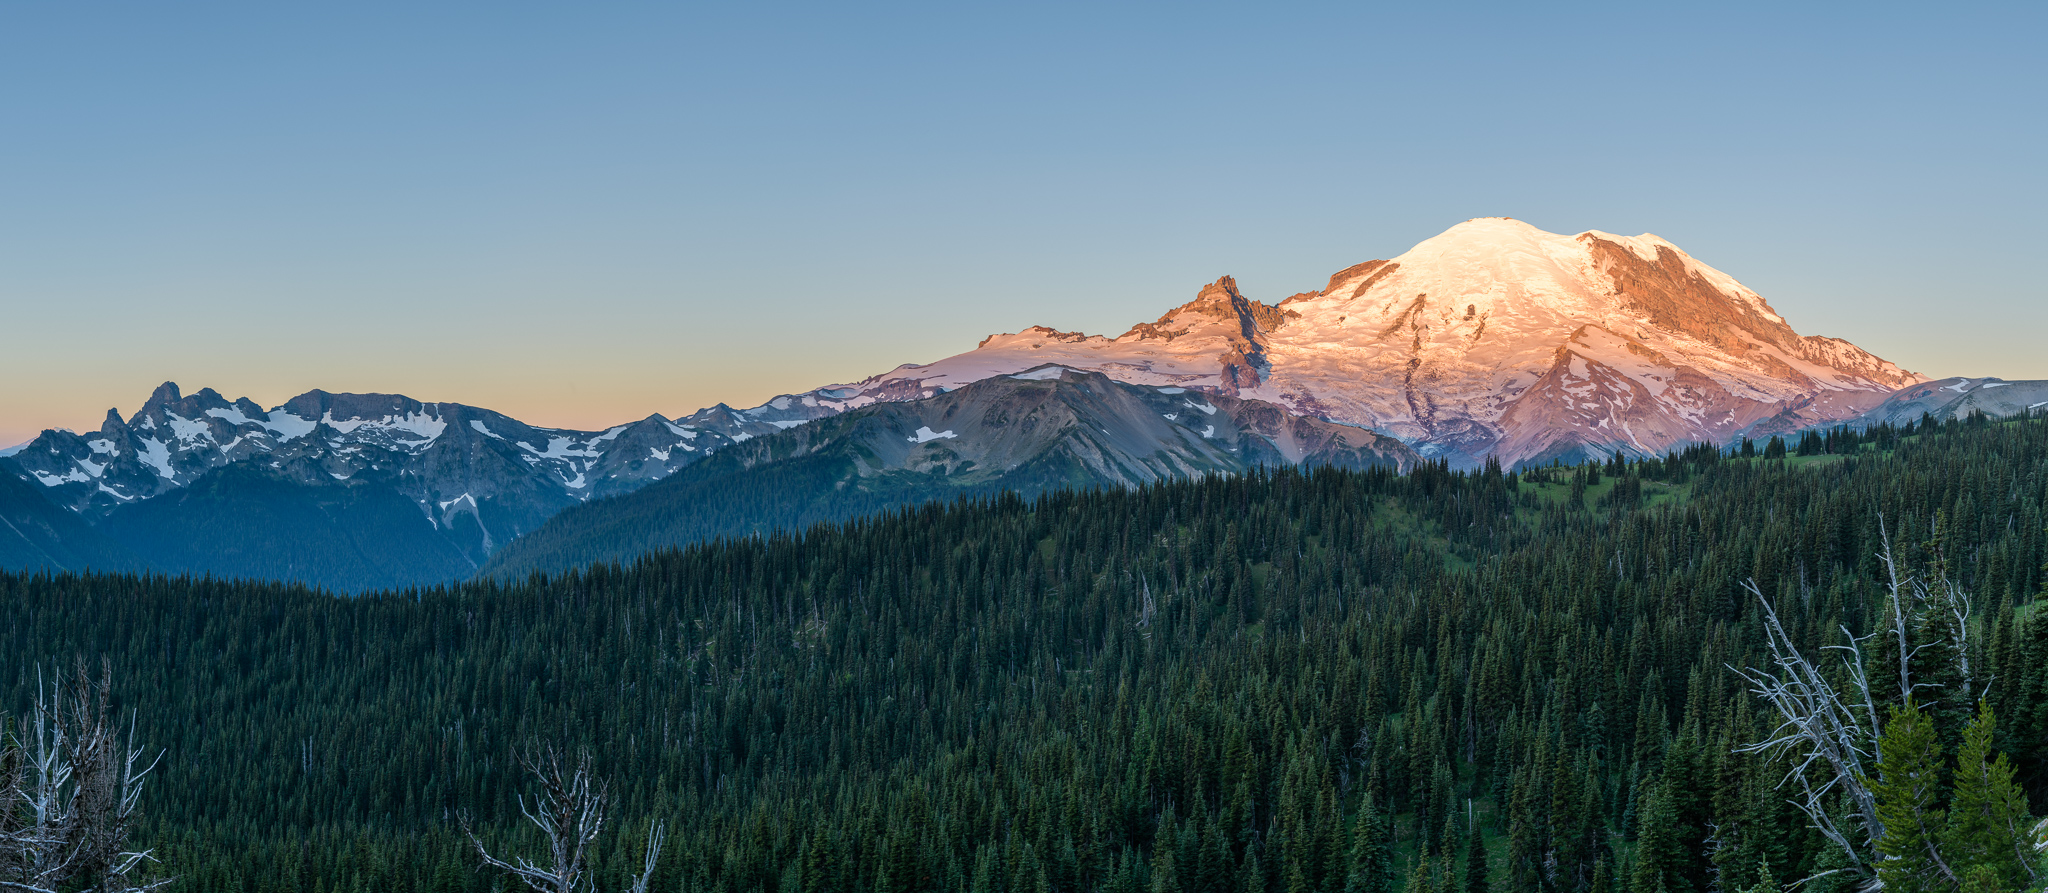 Kevin Lisota Smart Technology Logitech Momo Pedal Wiring Diagram Sunrise Over Mount Rainier At Click On The Image For A Full Size Panorama Photo By